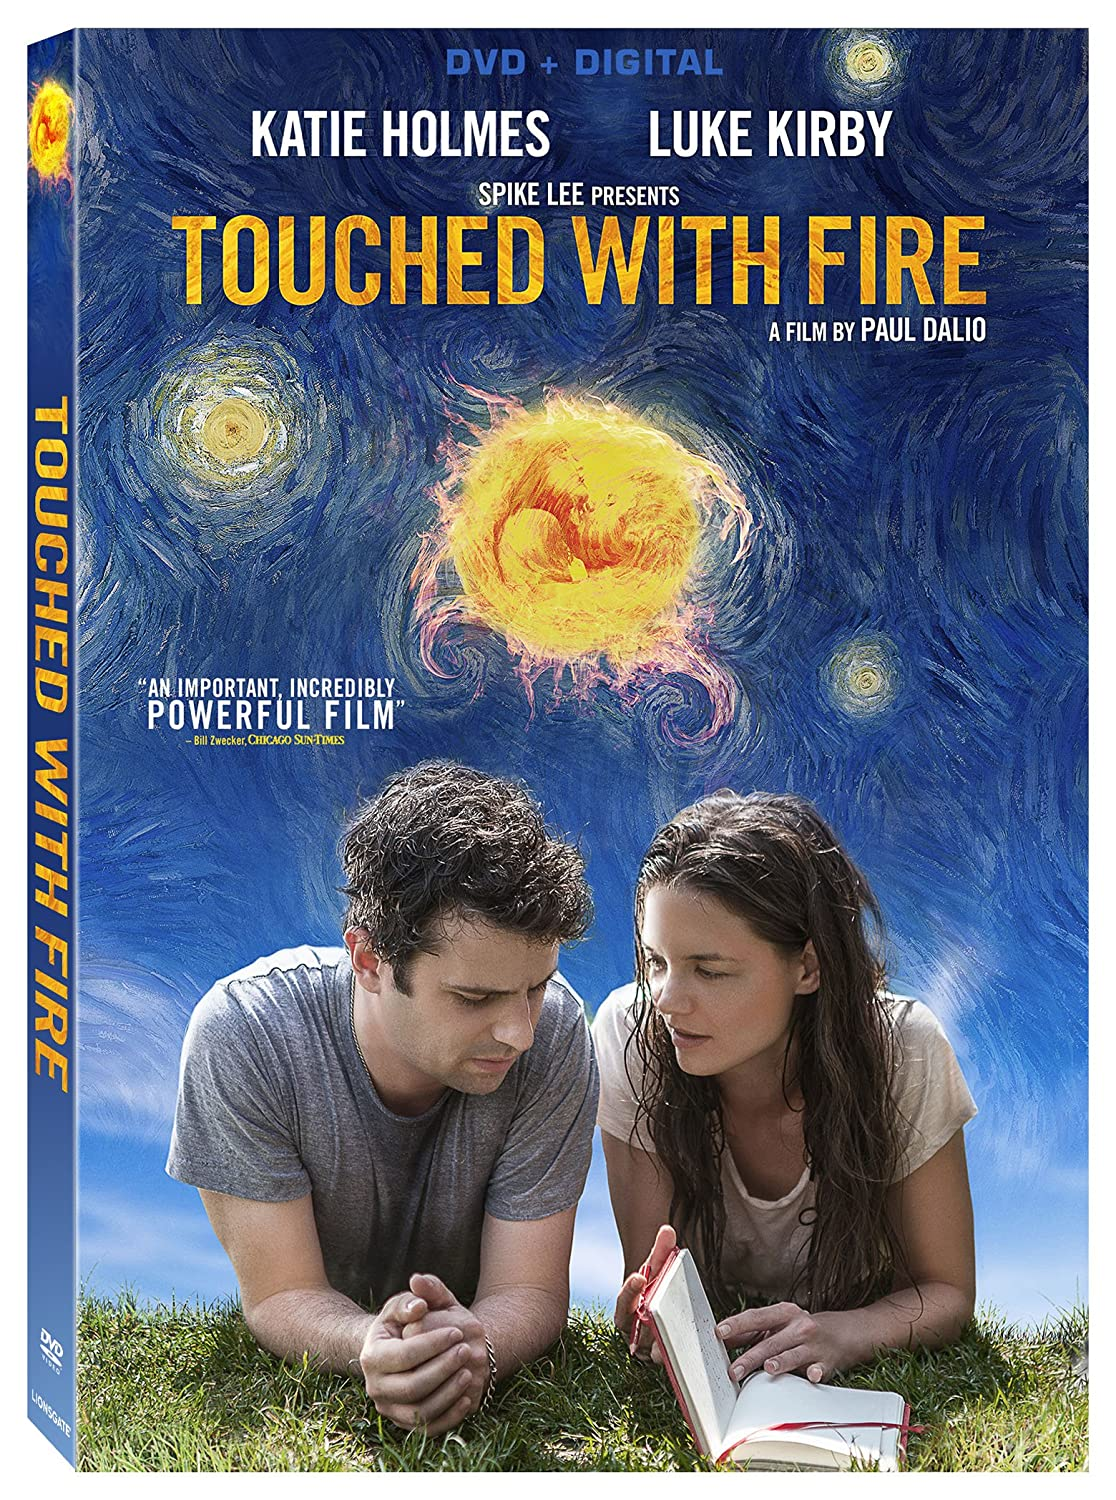 Amazon.com: Touched With Fire [DVD + Digital]: Katie Holmes, Luke ...